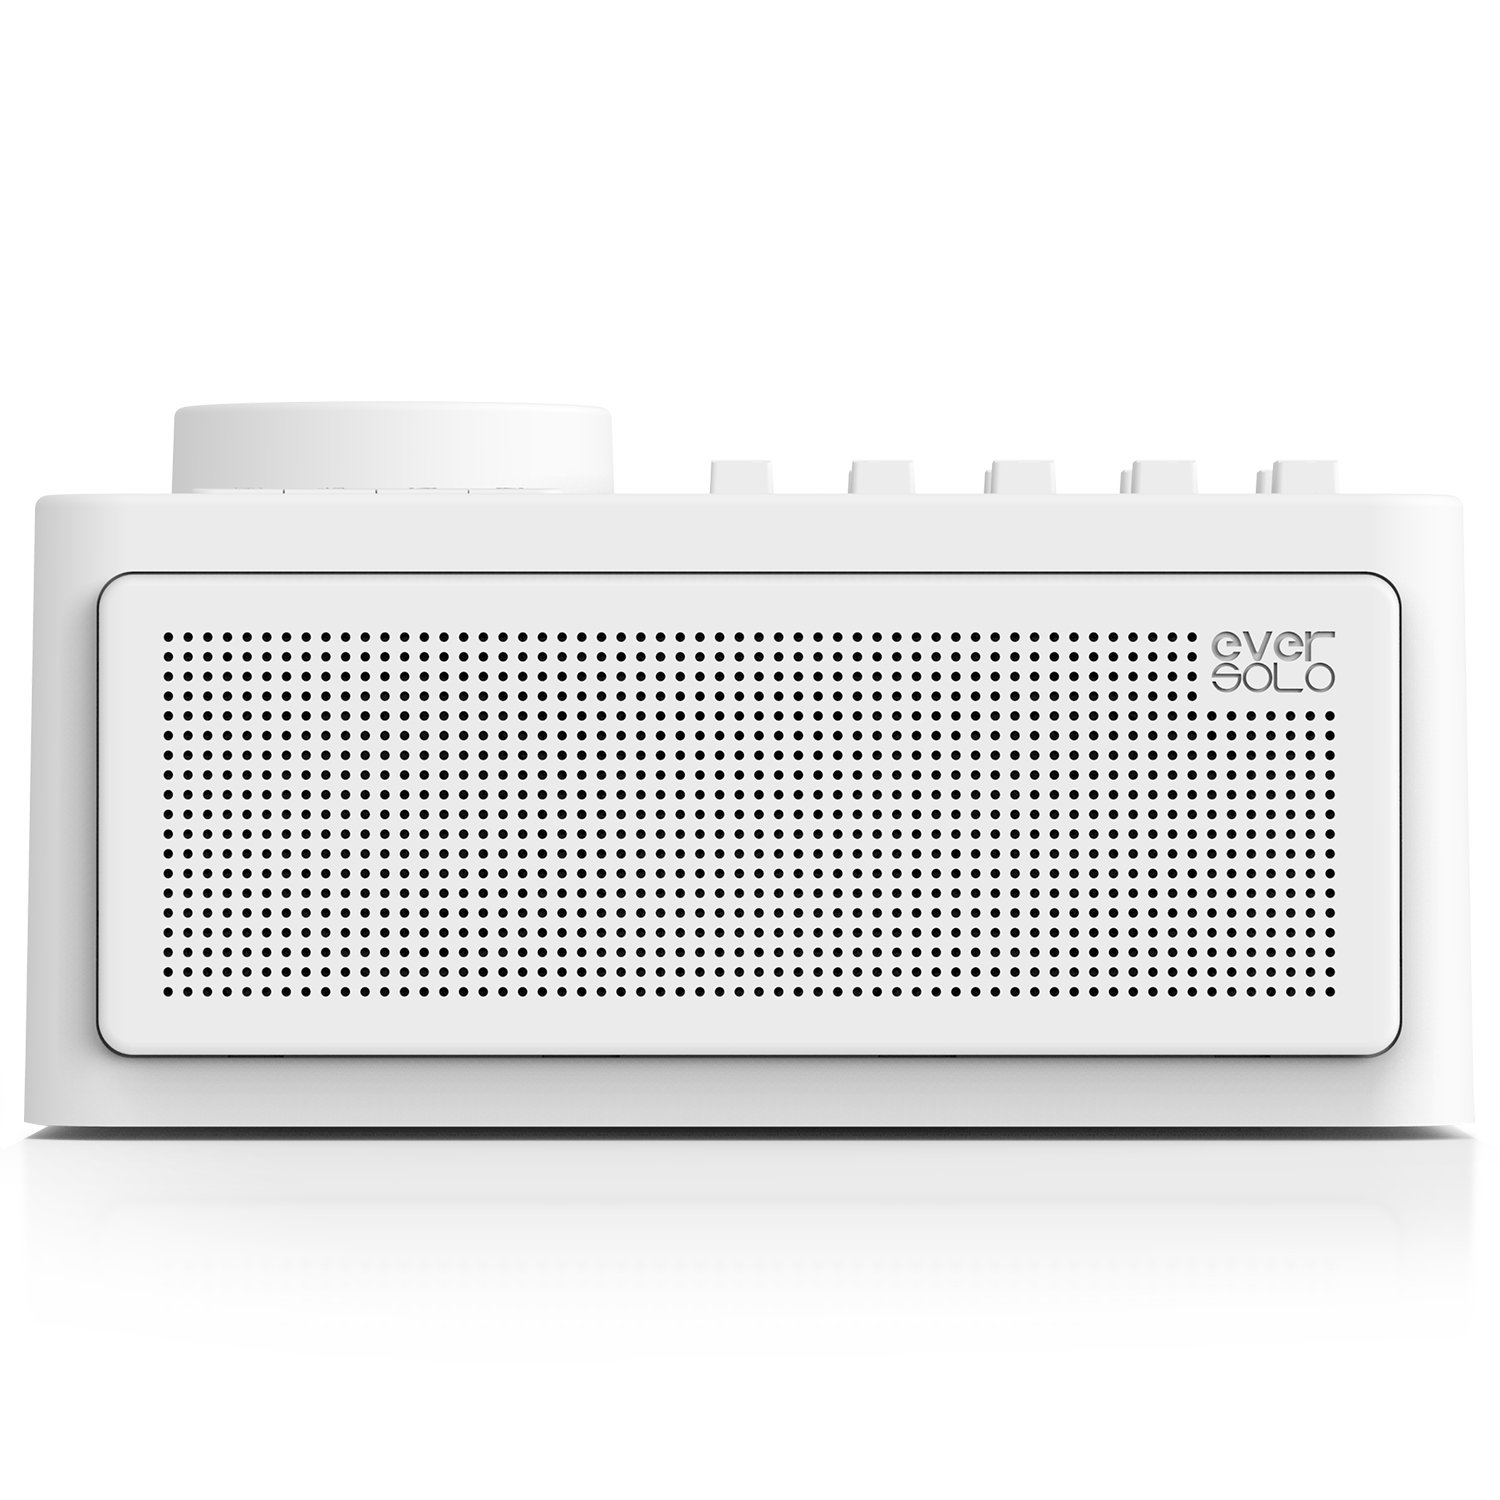 Zidoo Eversolo Sleep Therapy Sound Machine - All Natural White Noise for Sleep Include Wind, Rain, Stream, Ocean - Ten White Noises Support Mix- Wireless Speaker